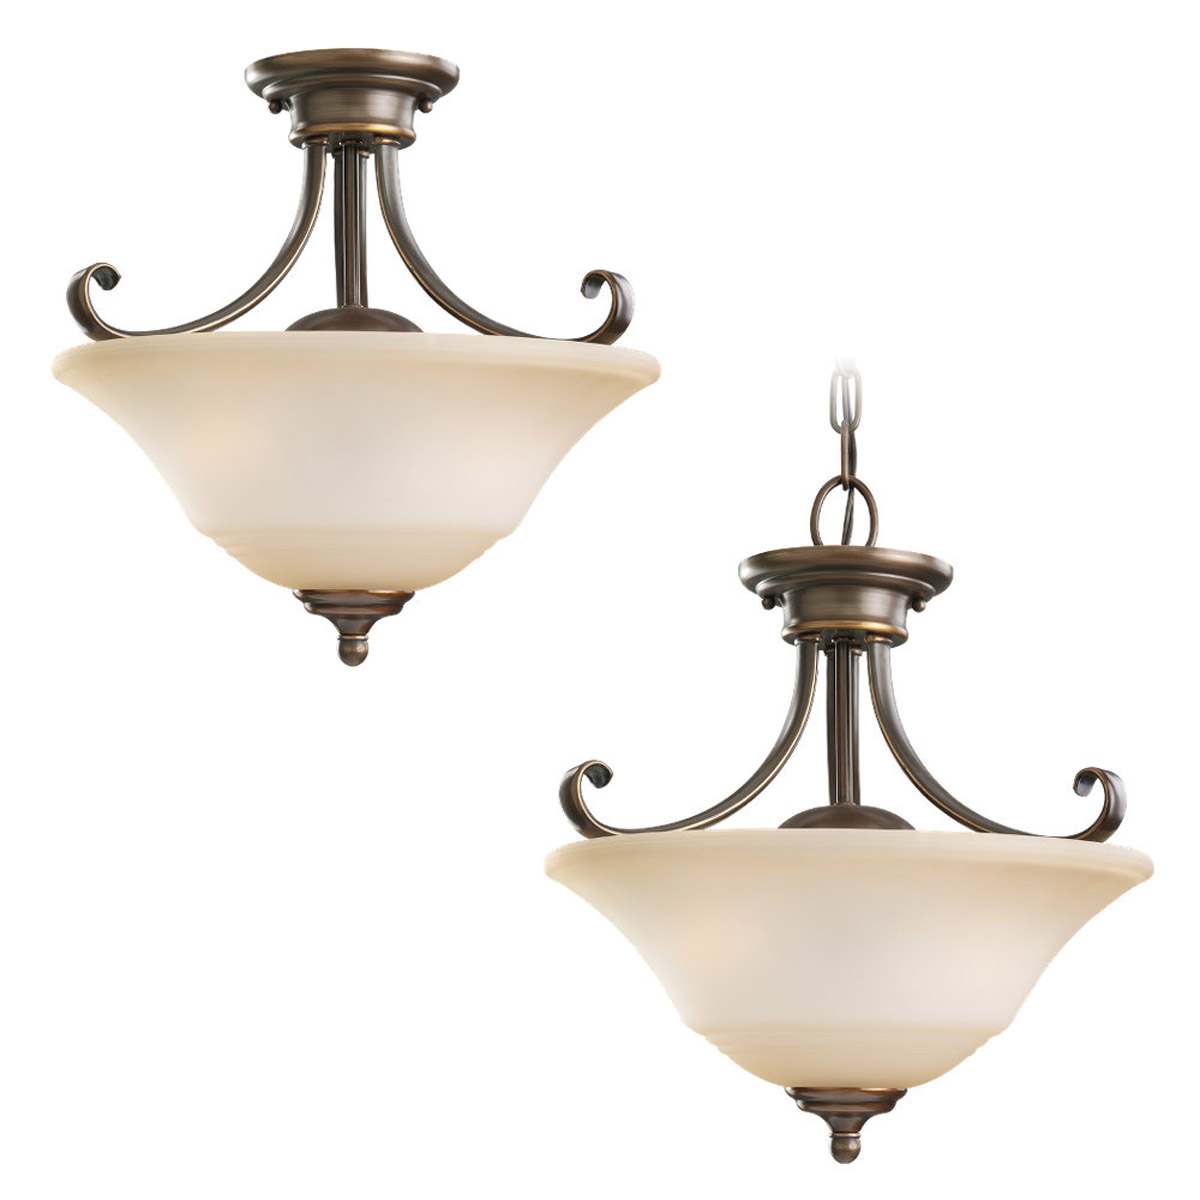 Sea Gull Lighting Parkview 2 Light Semi-Flush Mount in Russet Bronze 77380-829